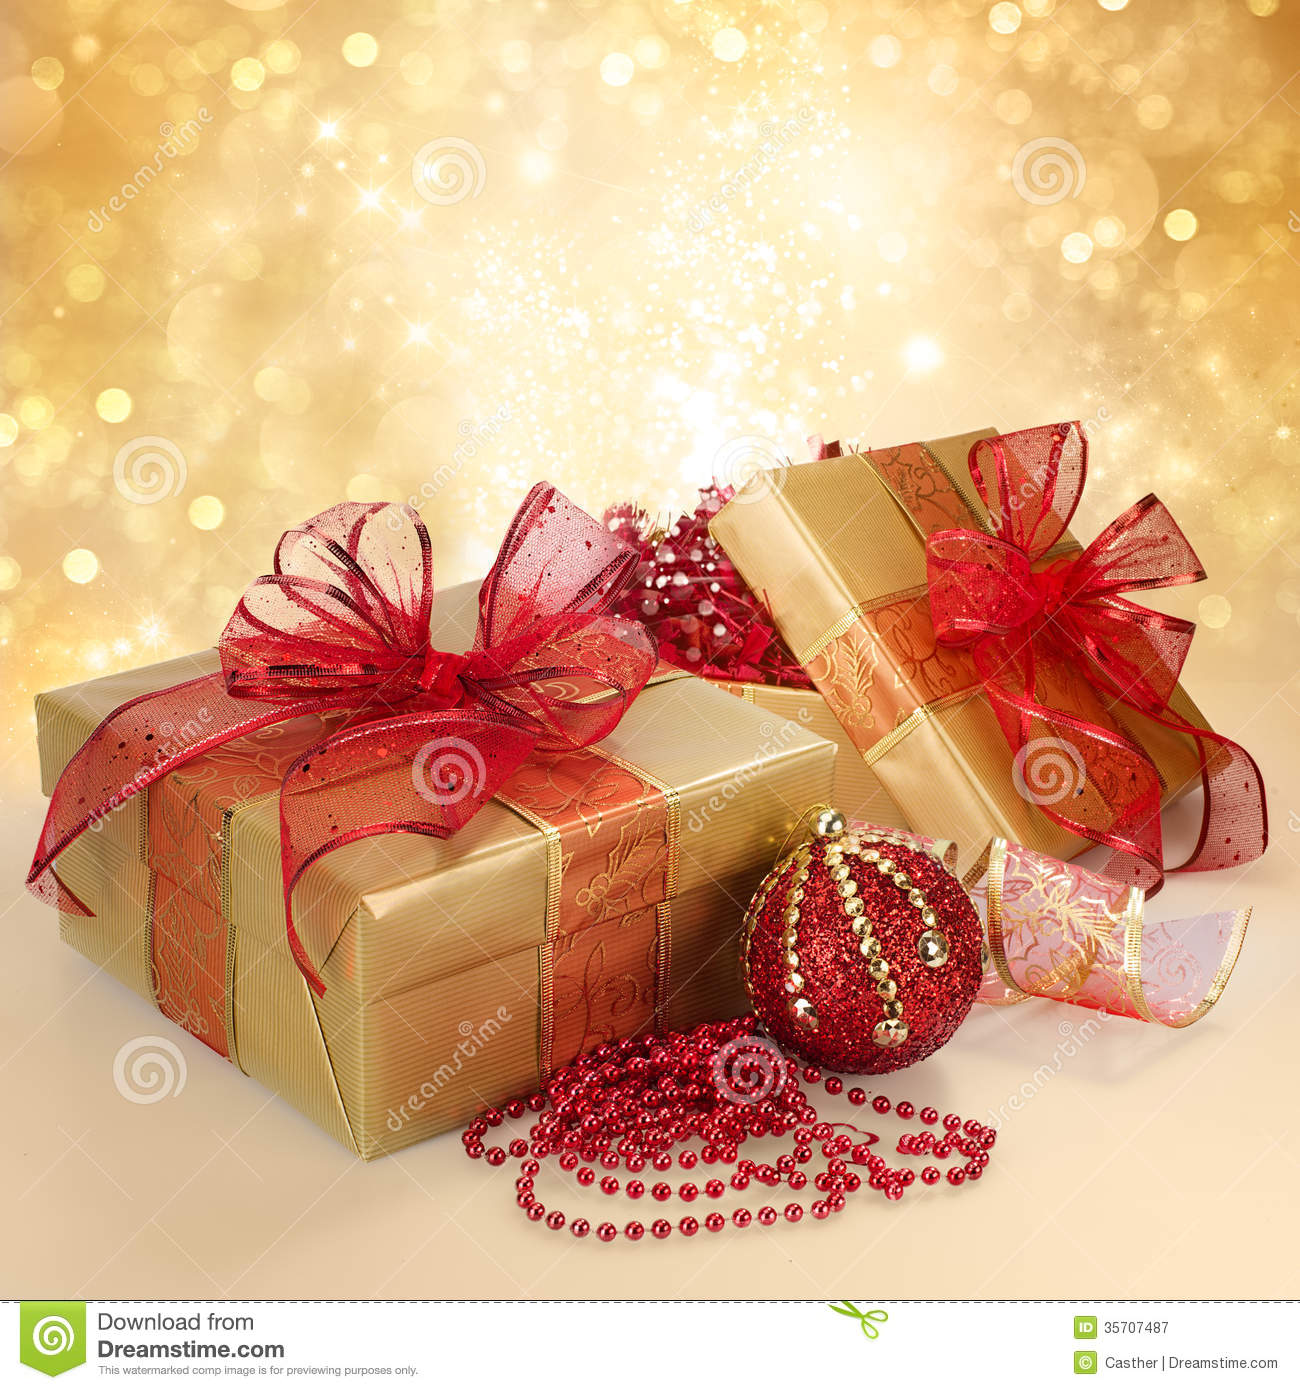 christmas gift box and decorations in gold and red